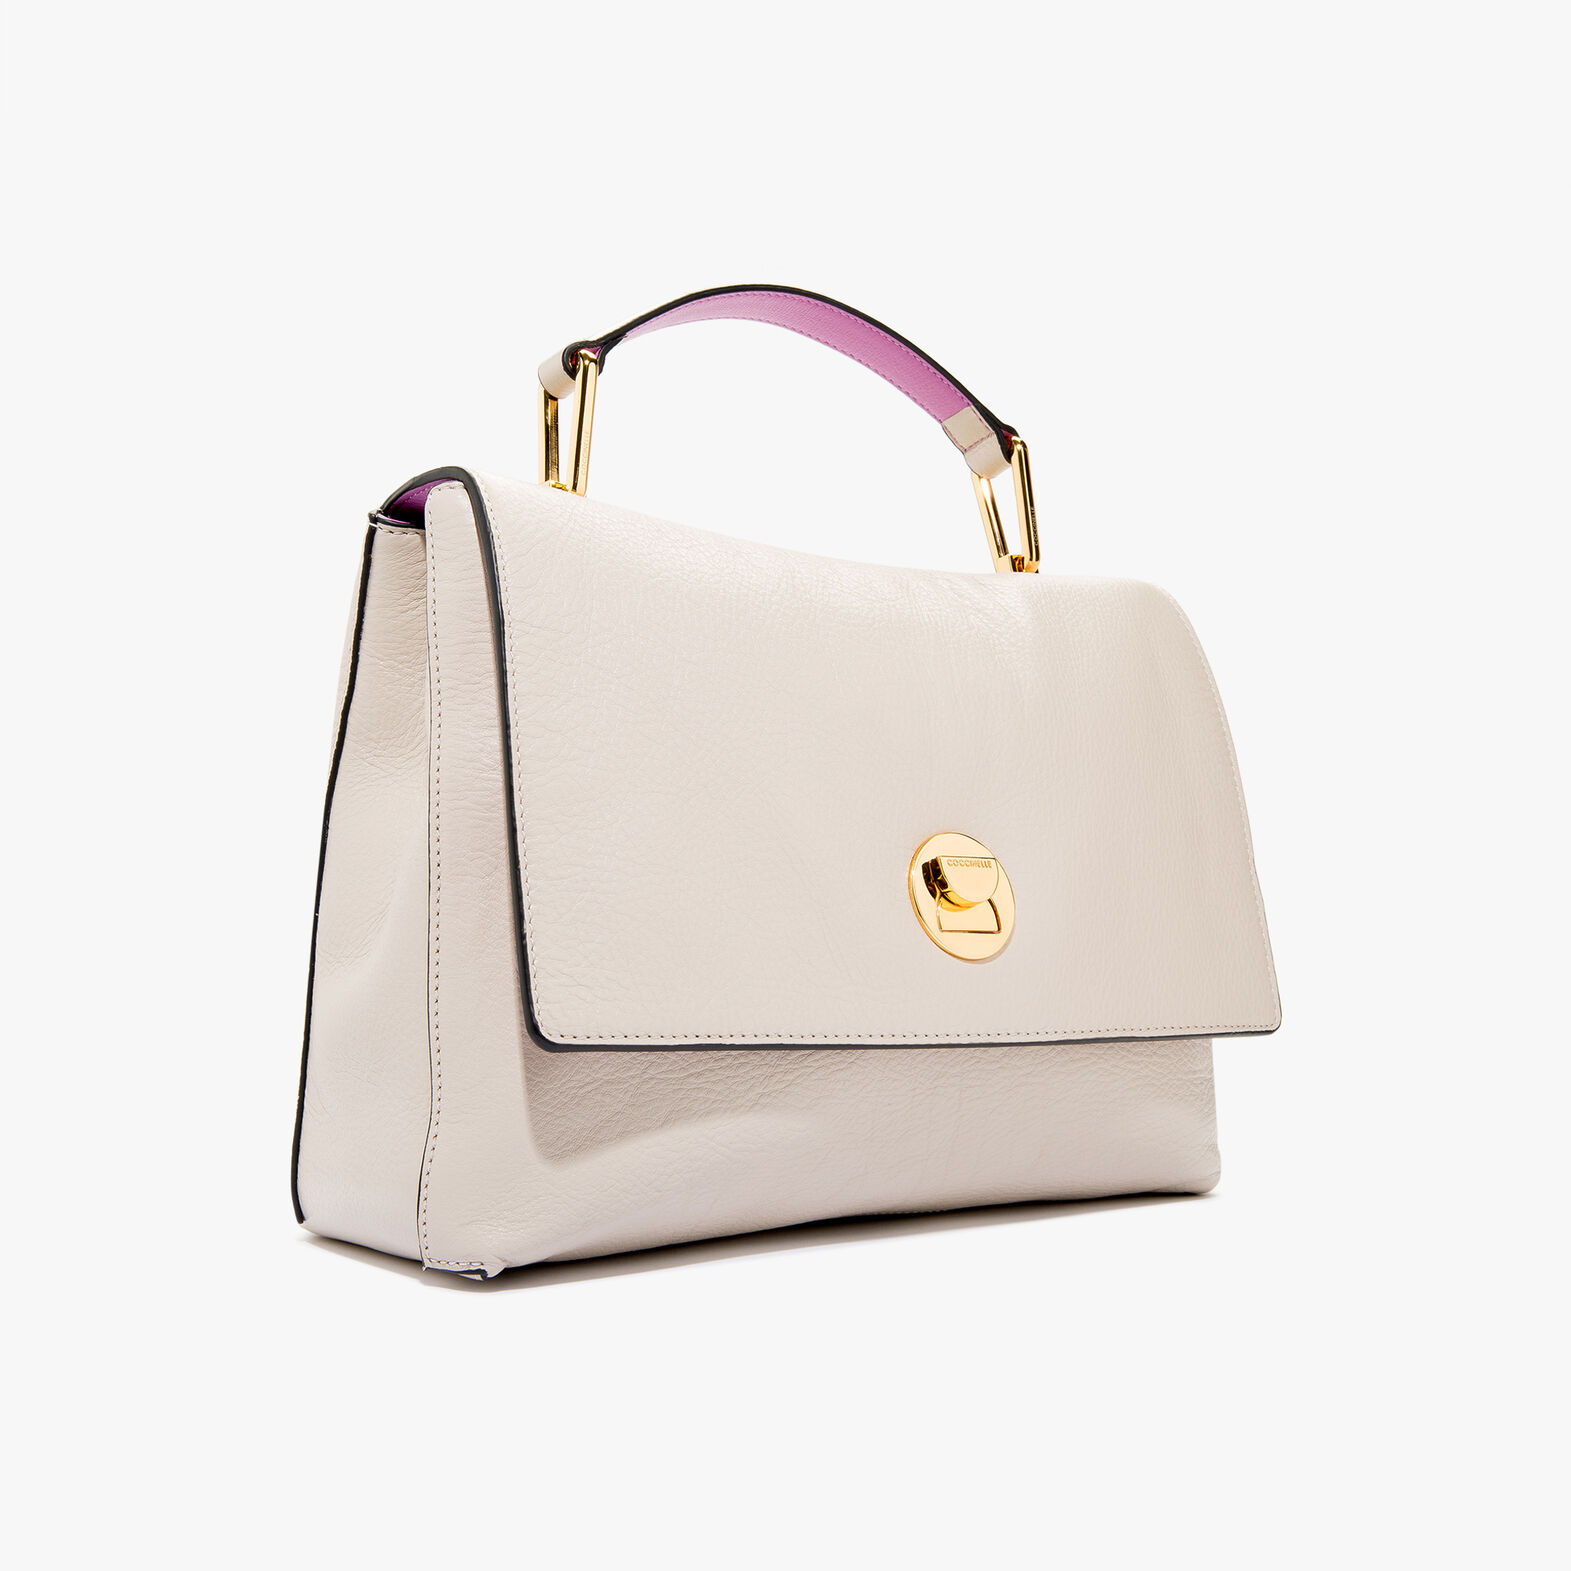 Coccinelle Liya leather handbag